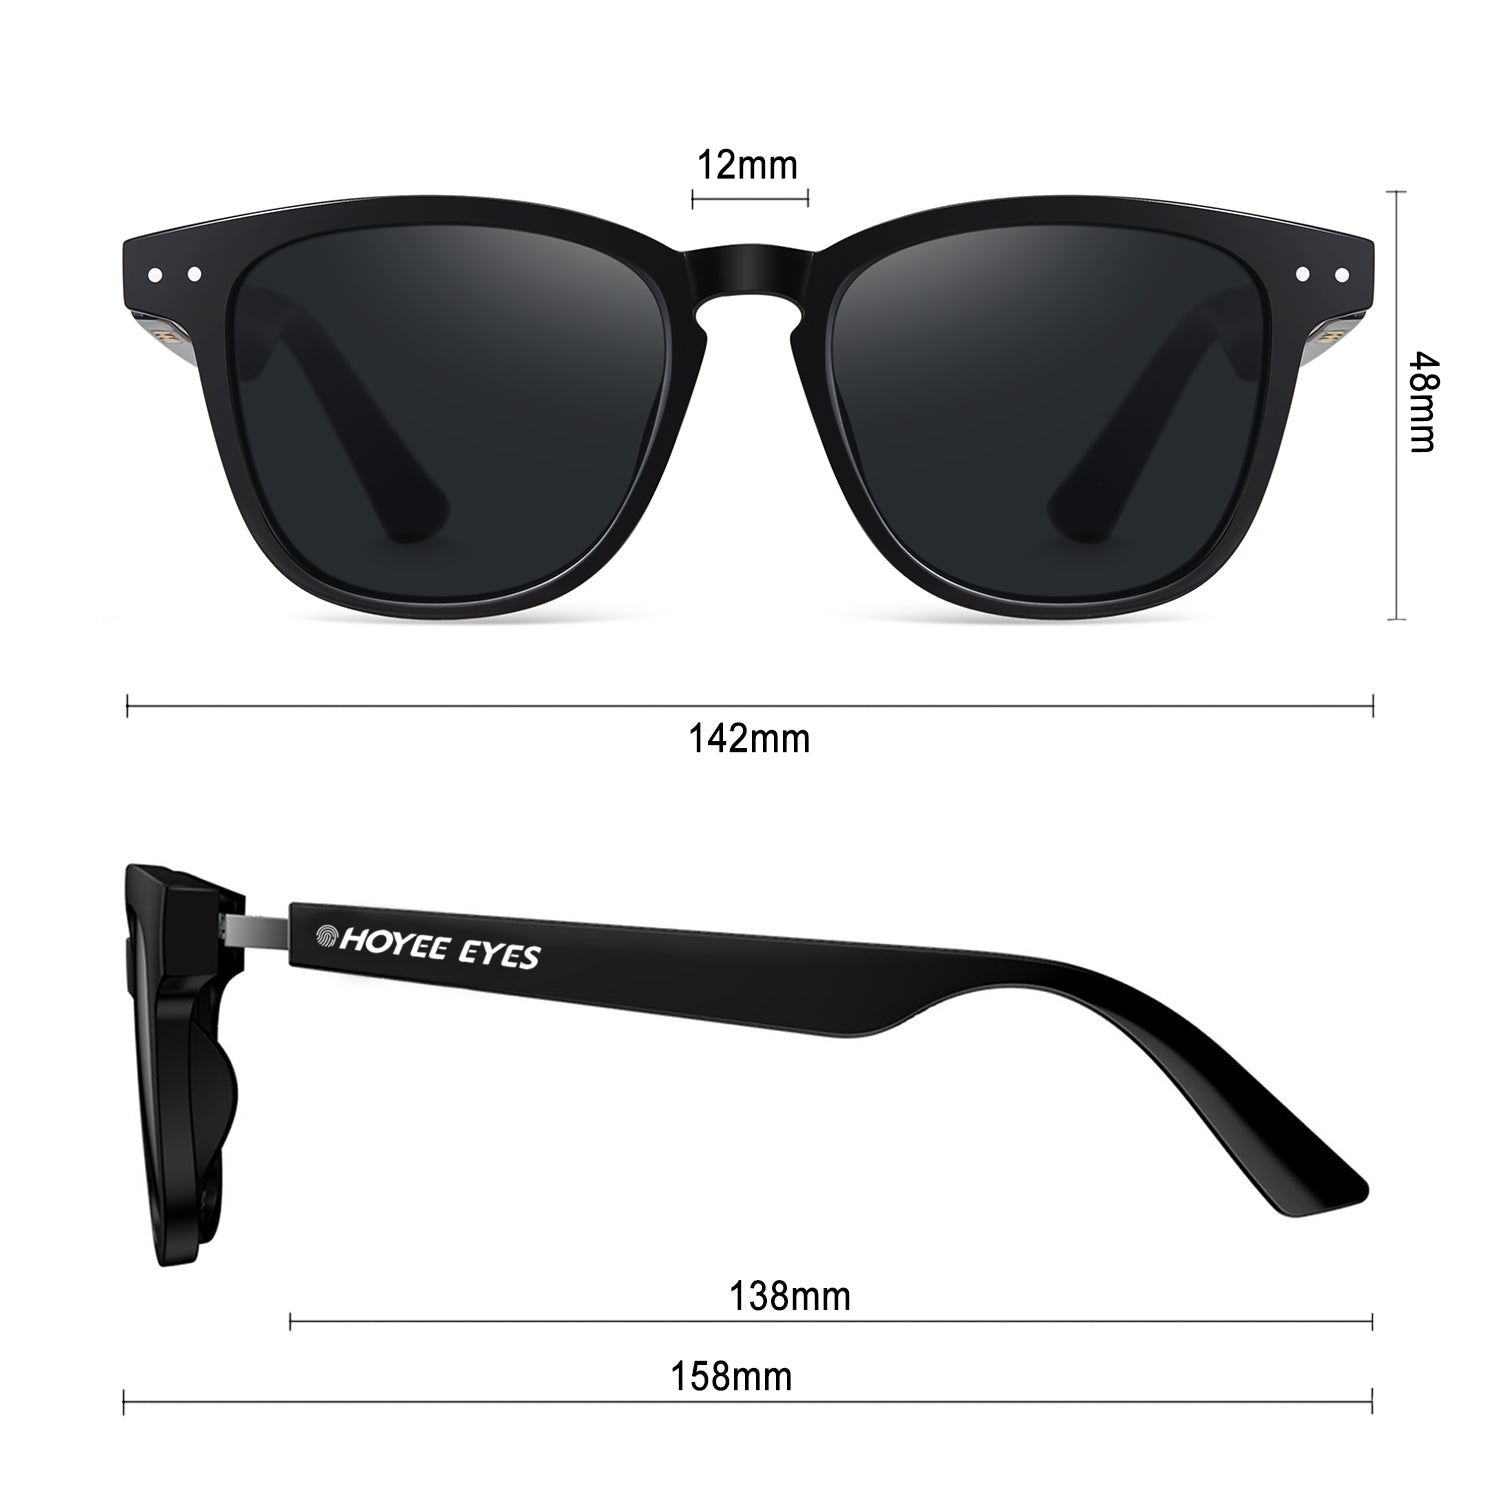 hoyee eyes astrid smart sunglasses dimensions